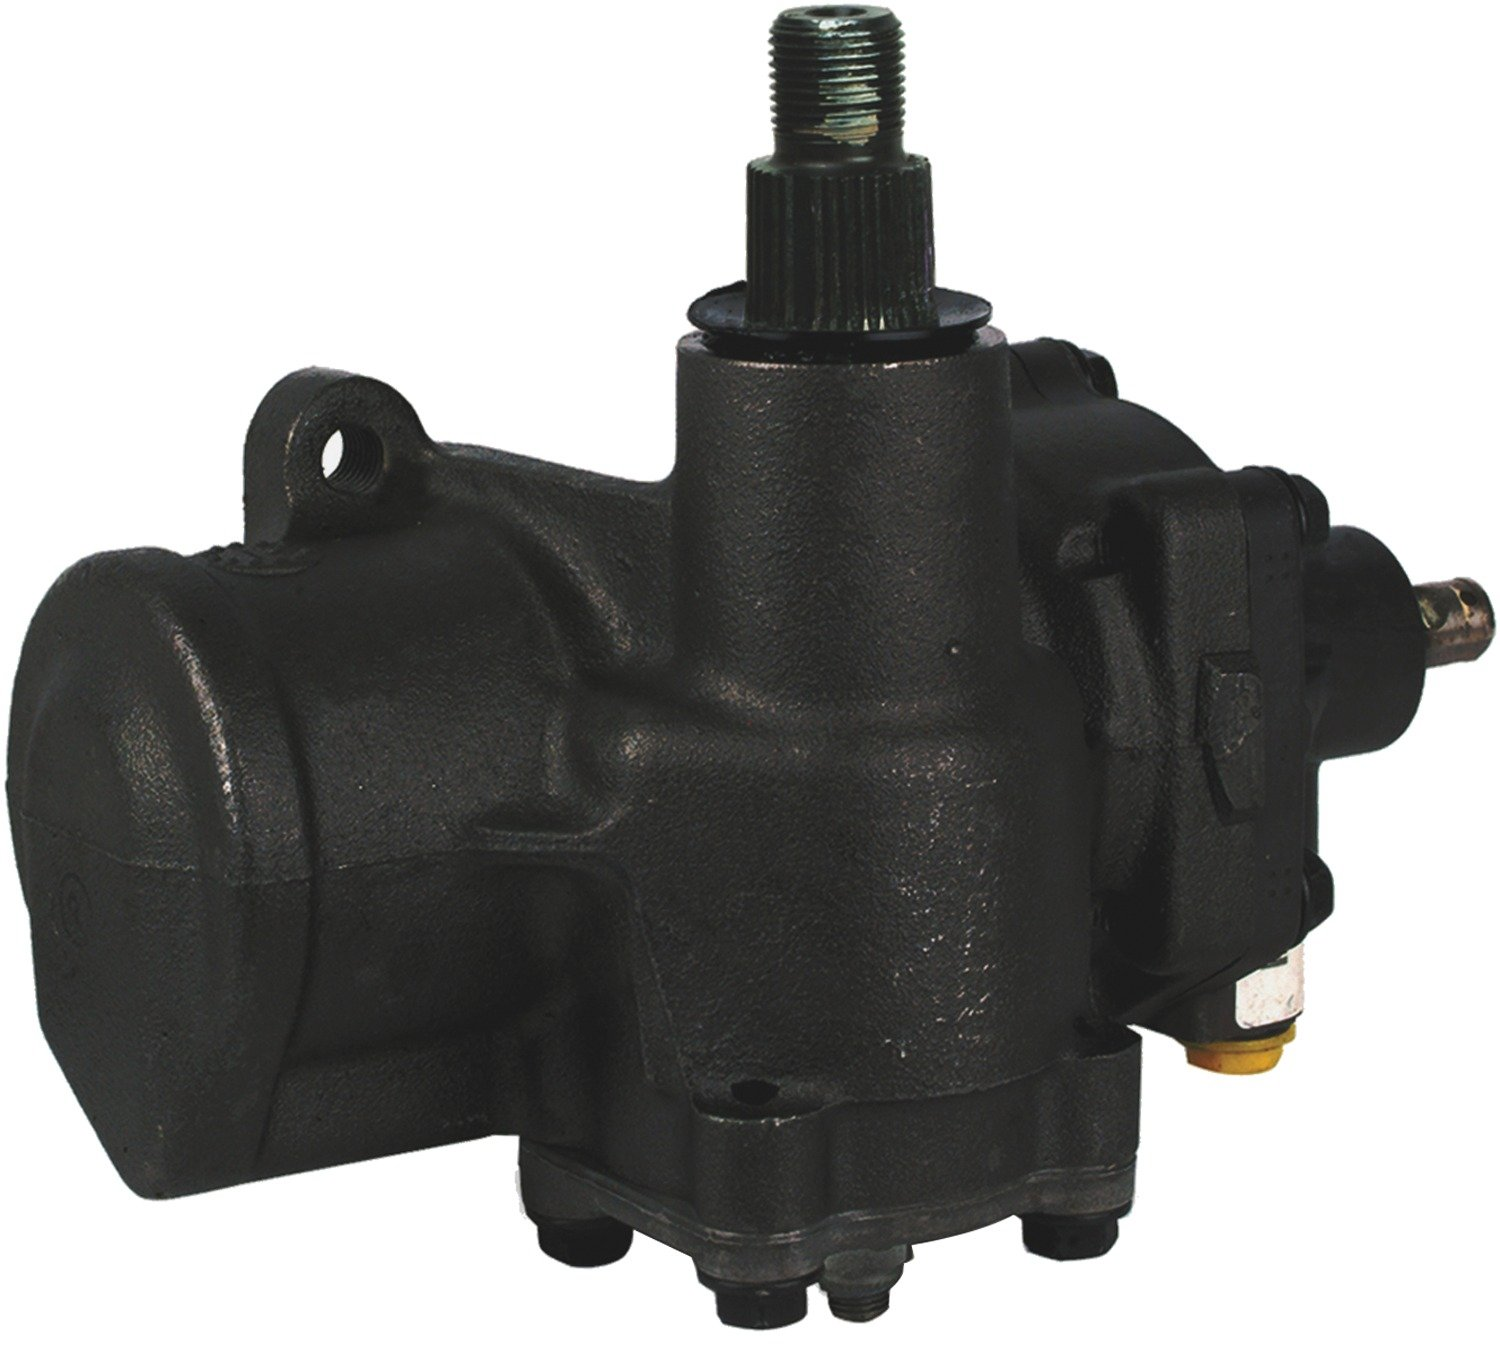 A-1 Cardone 27-8413 Remanufactured Power Steering Gear